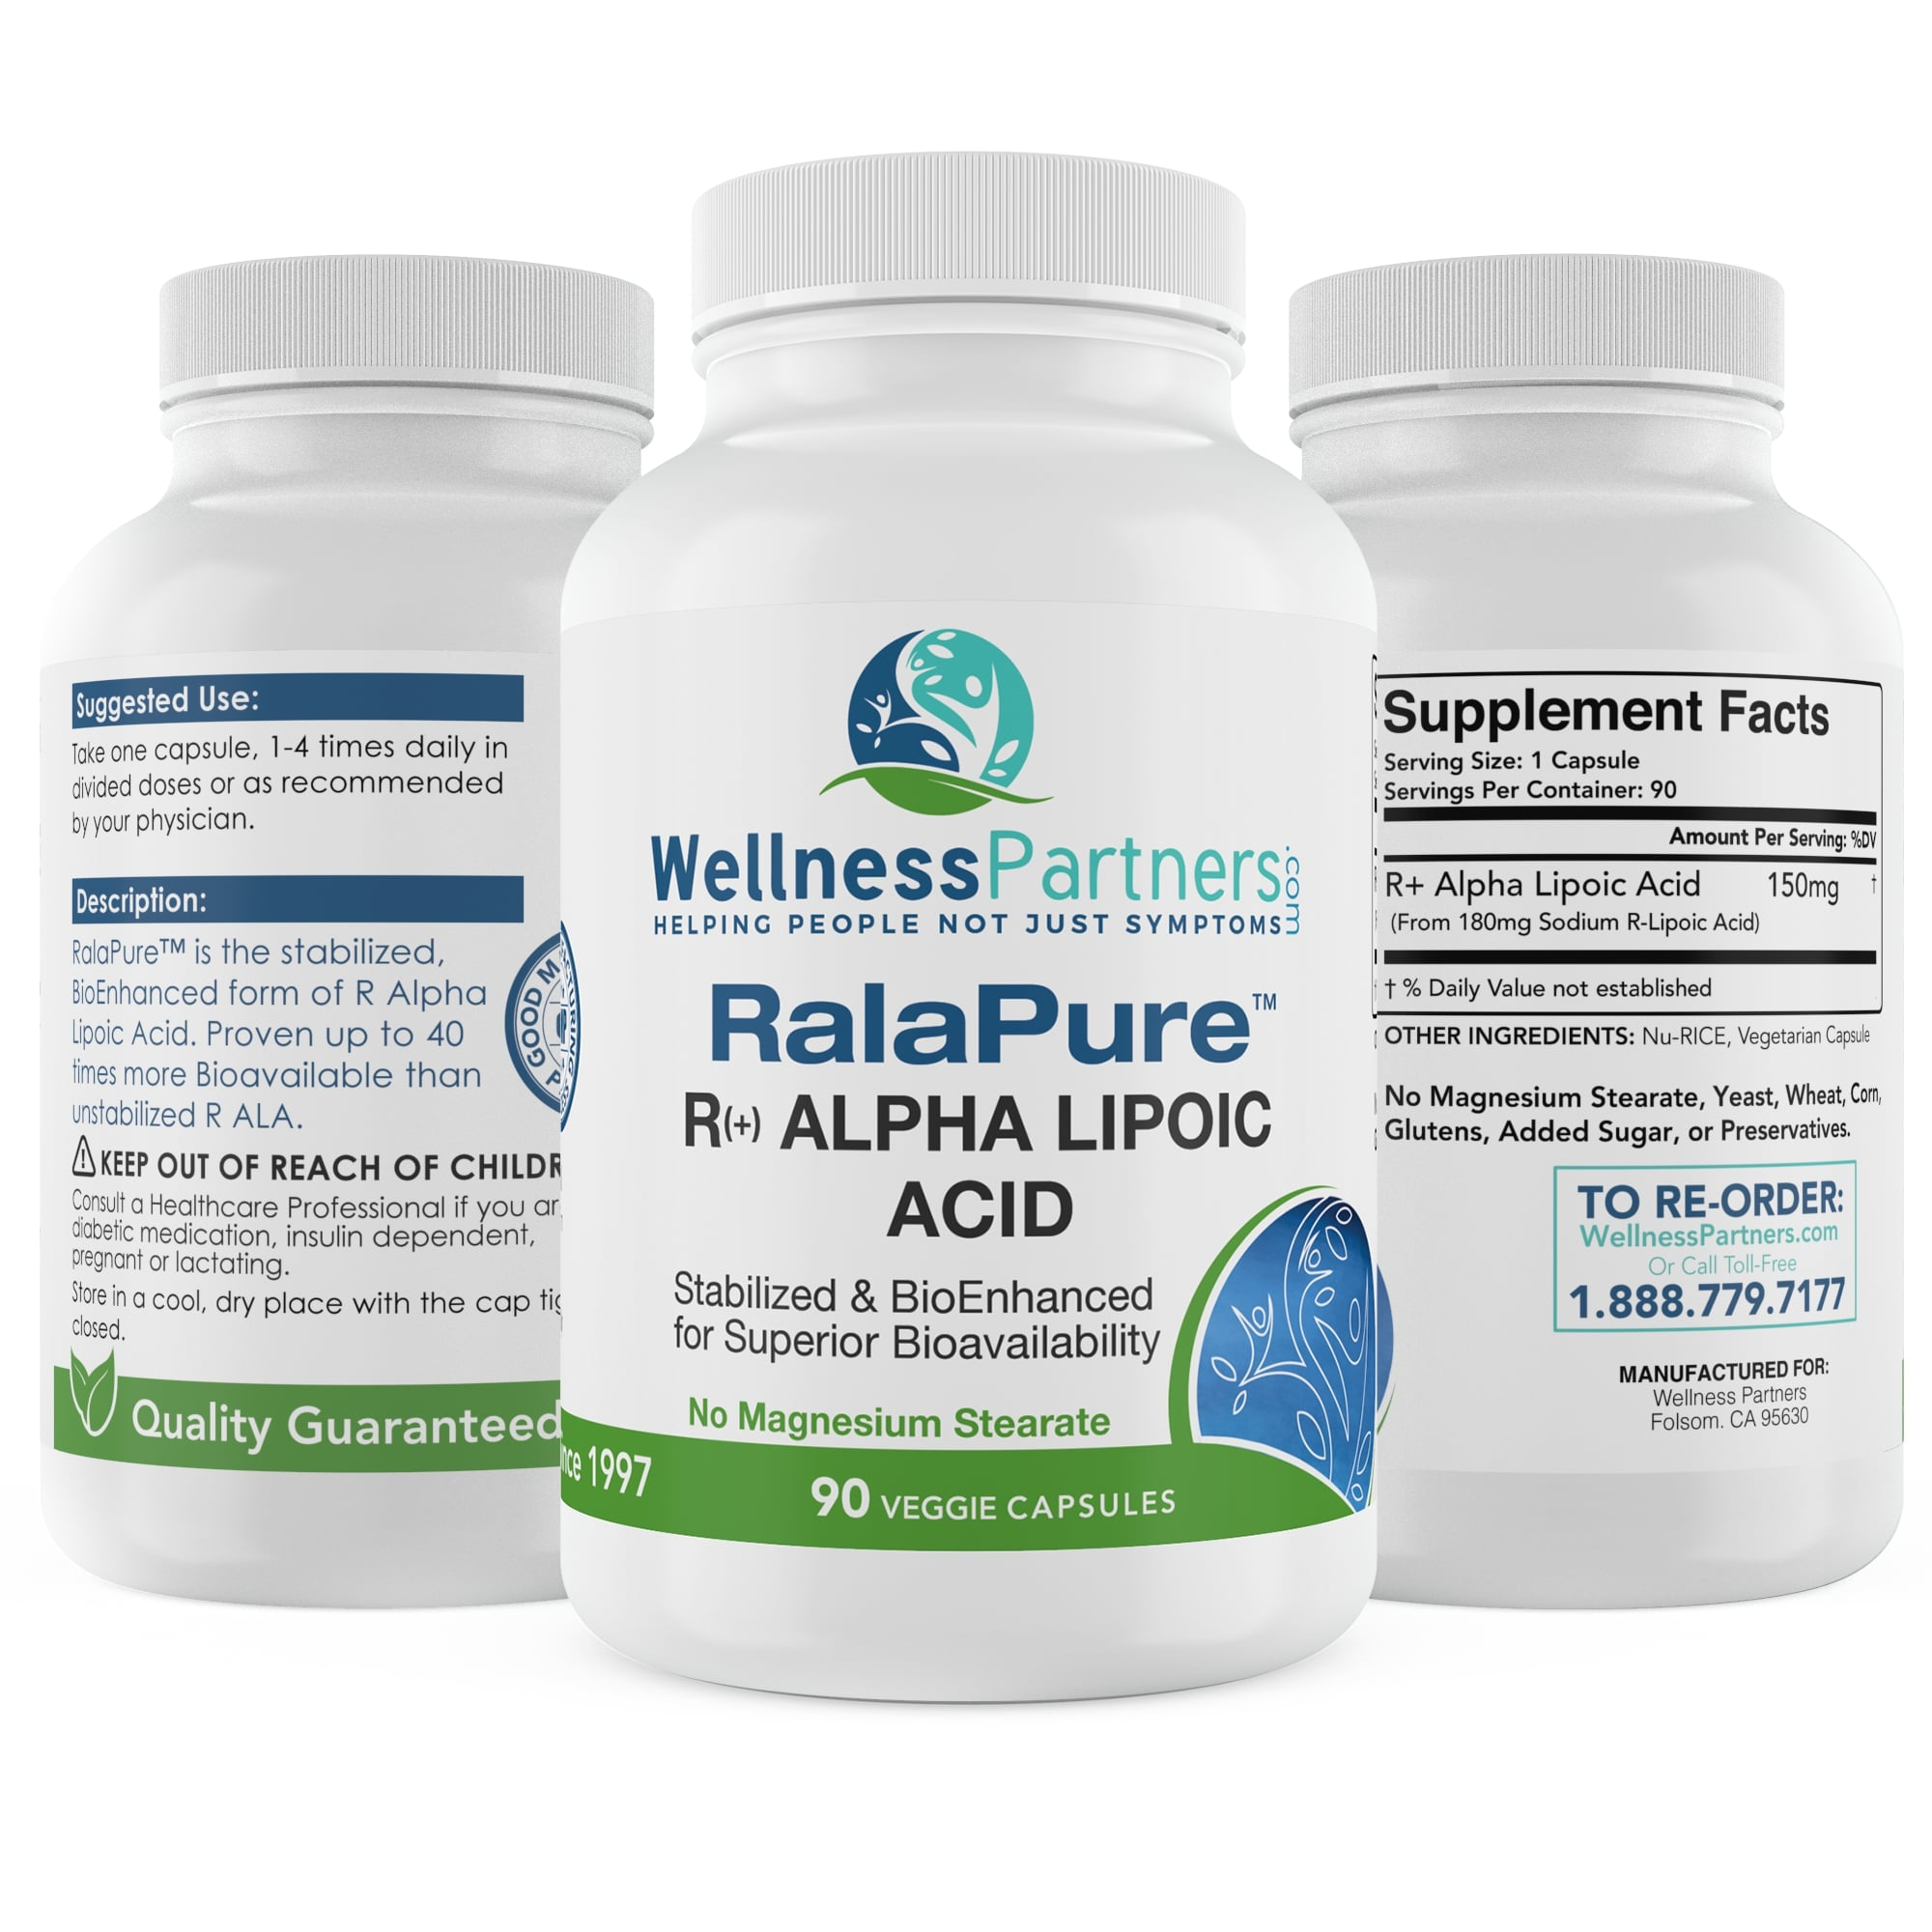 RalaPure Stabilized R-Alpha Lipoic Acid - ALA